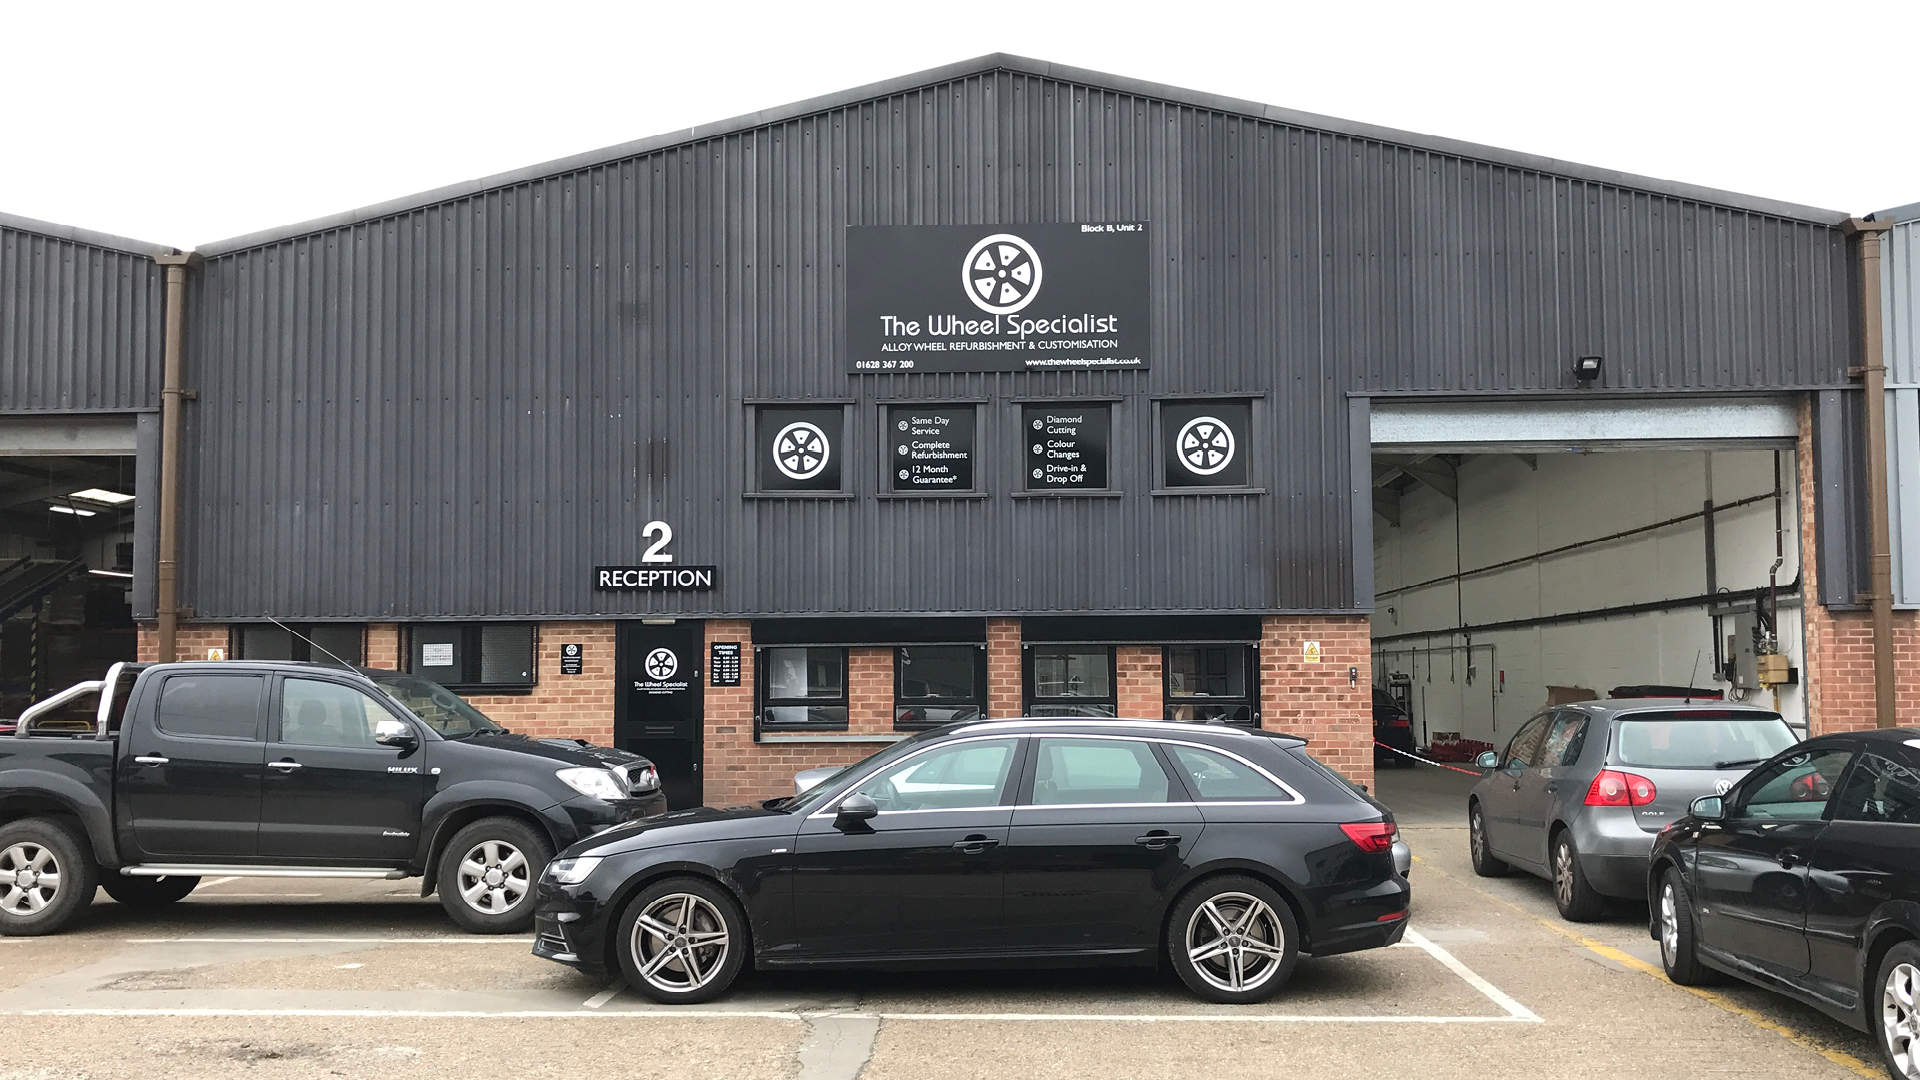 Past, present & future at The Wheel Specialist